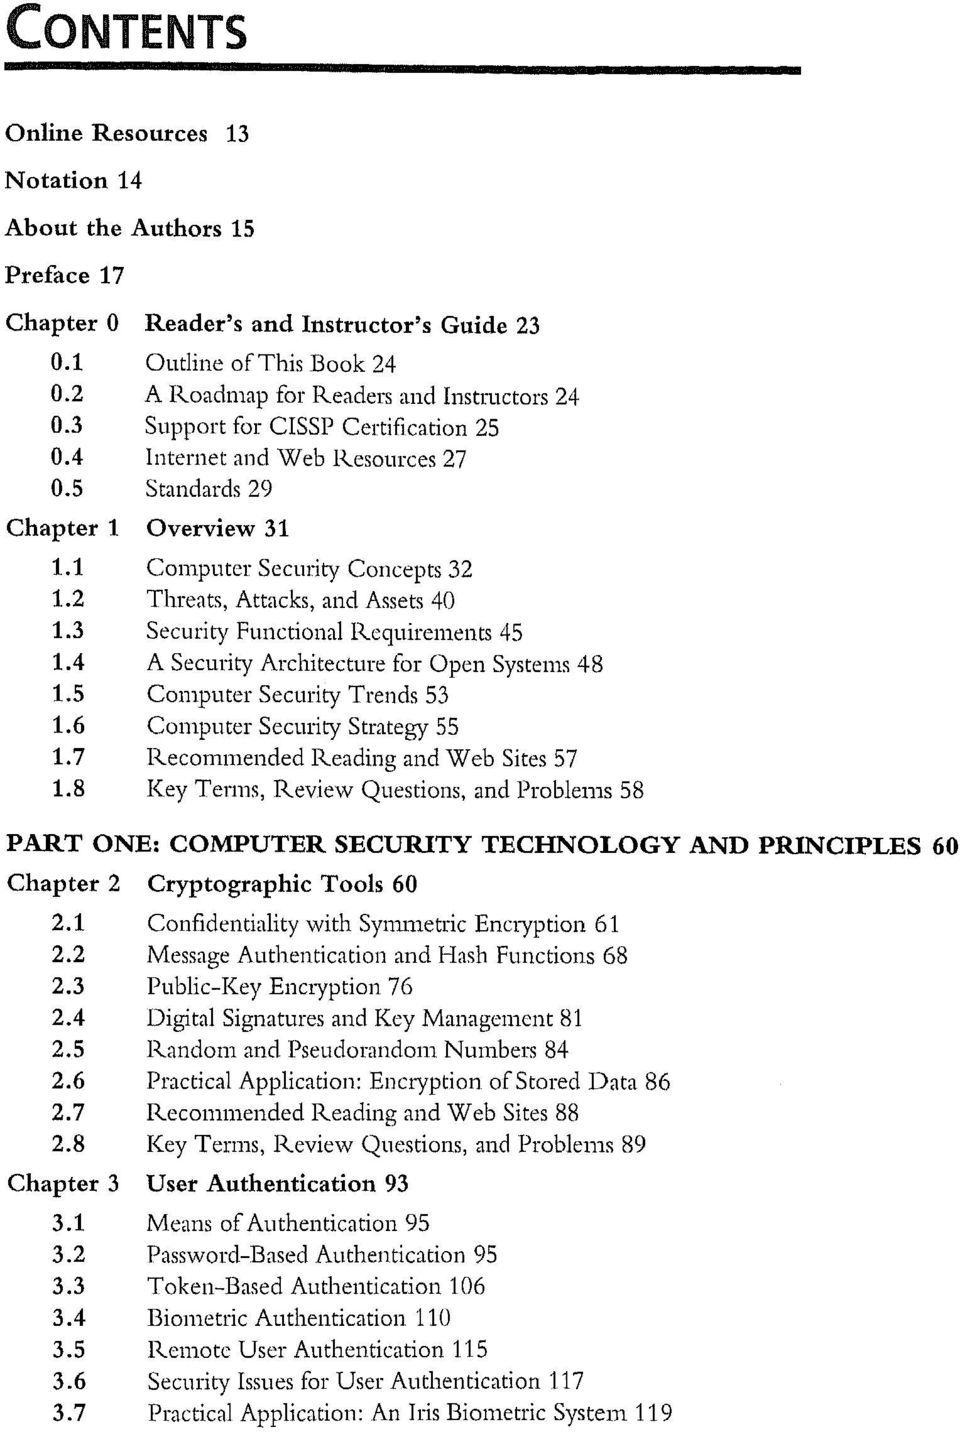 3 Security Functional Requirements 45 1.4 A Security Architecture for Open Systems 48 1.5 Computer Security Trends 53 1.6 Computer Security Strategy 55 1.7 Recommended Reading and Web Sites 57 1.